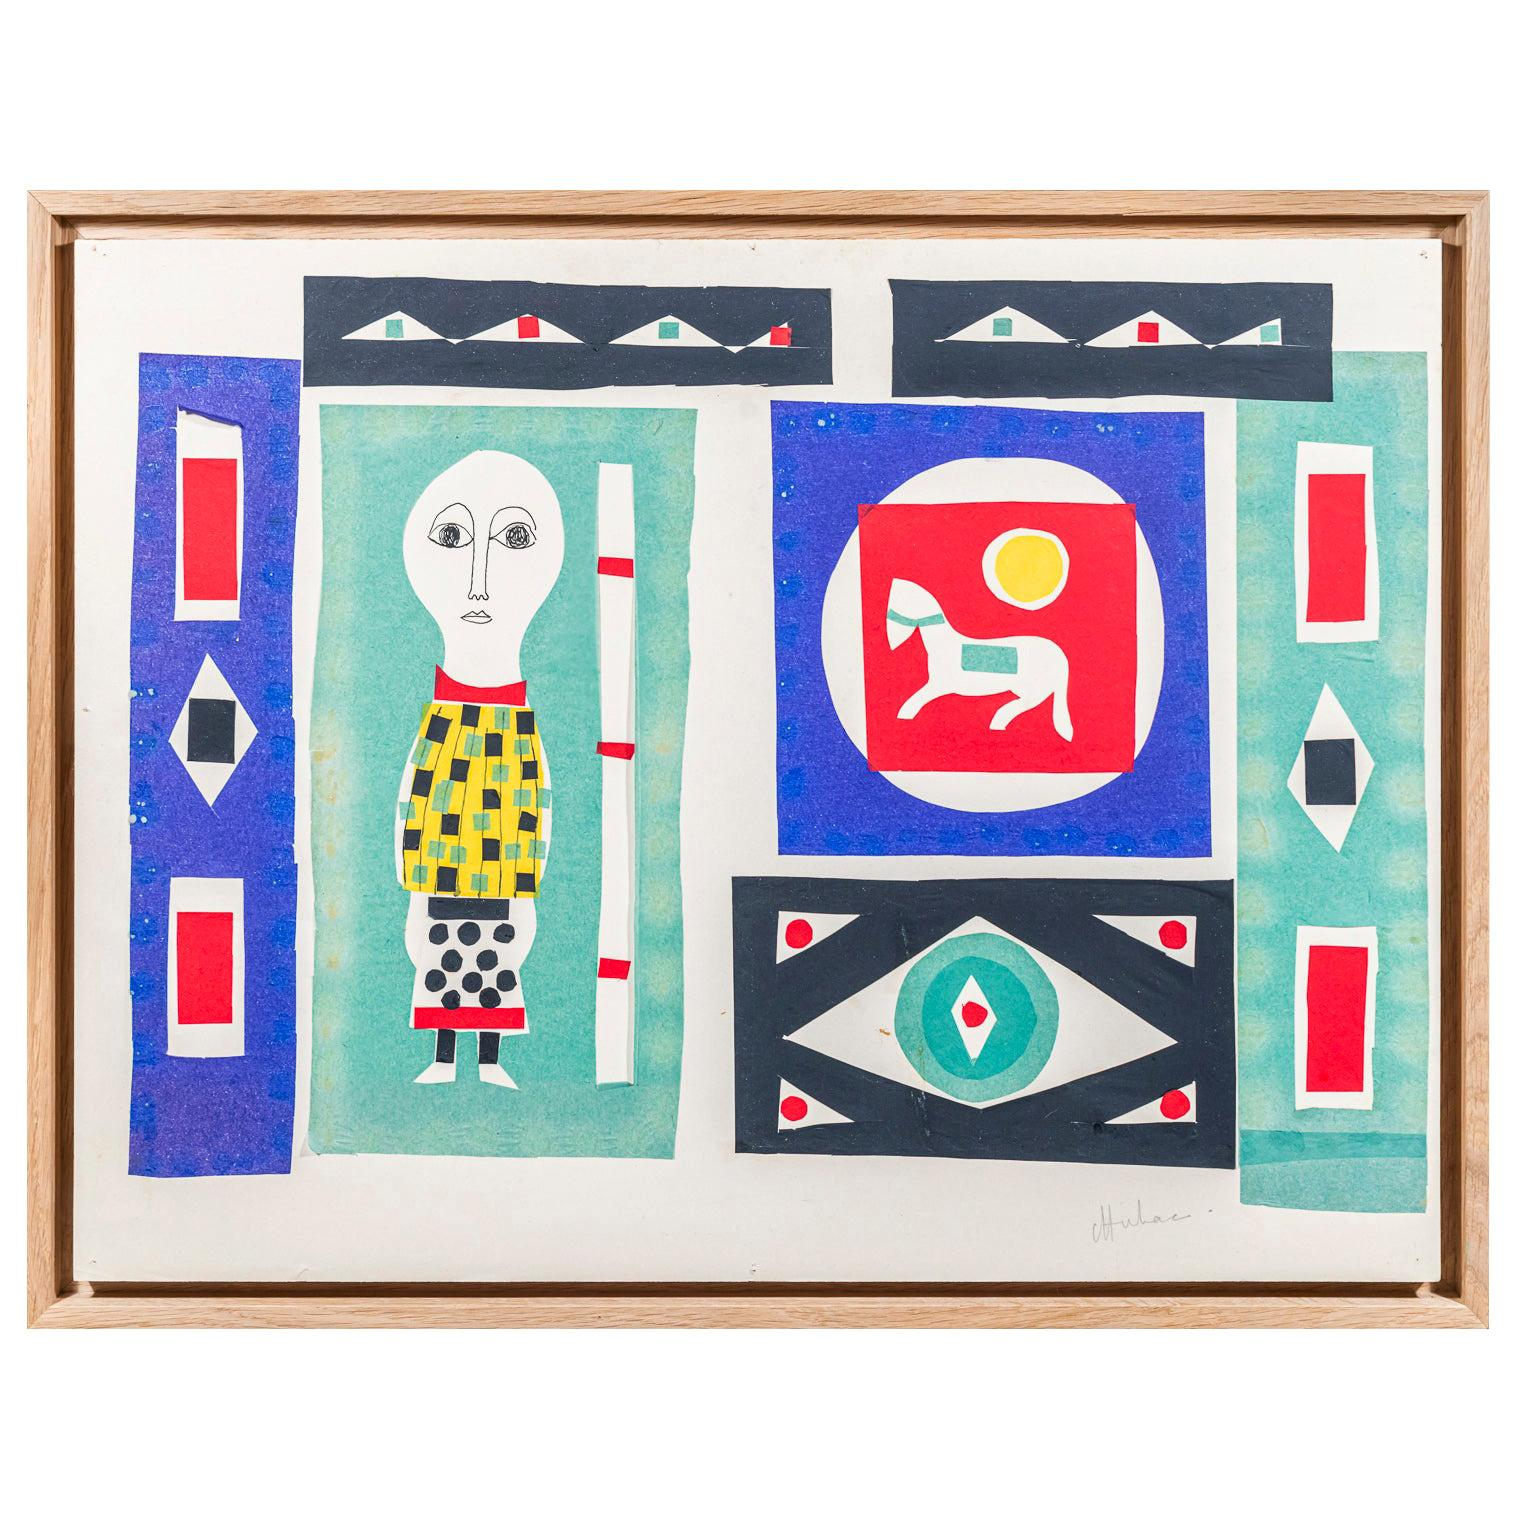 Albert Chubac, Composition, Painting, Mixed-Media on Paper, circa 1960, France